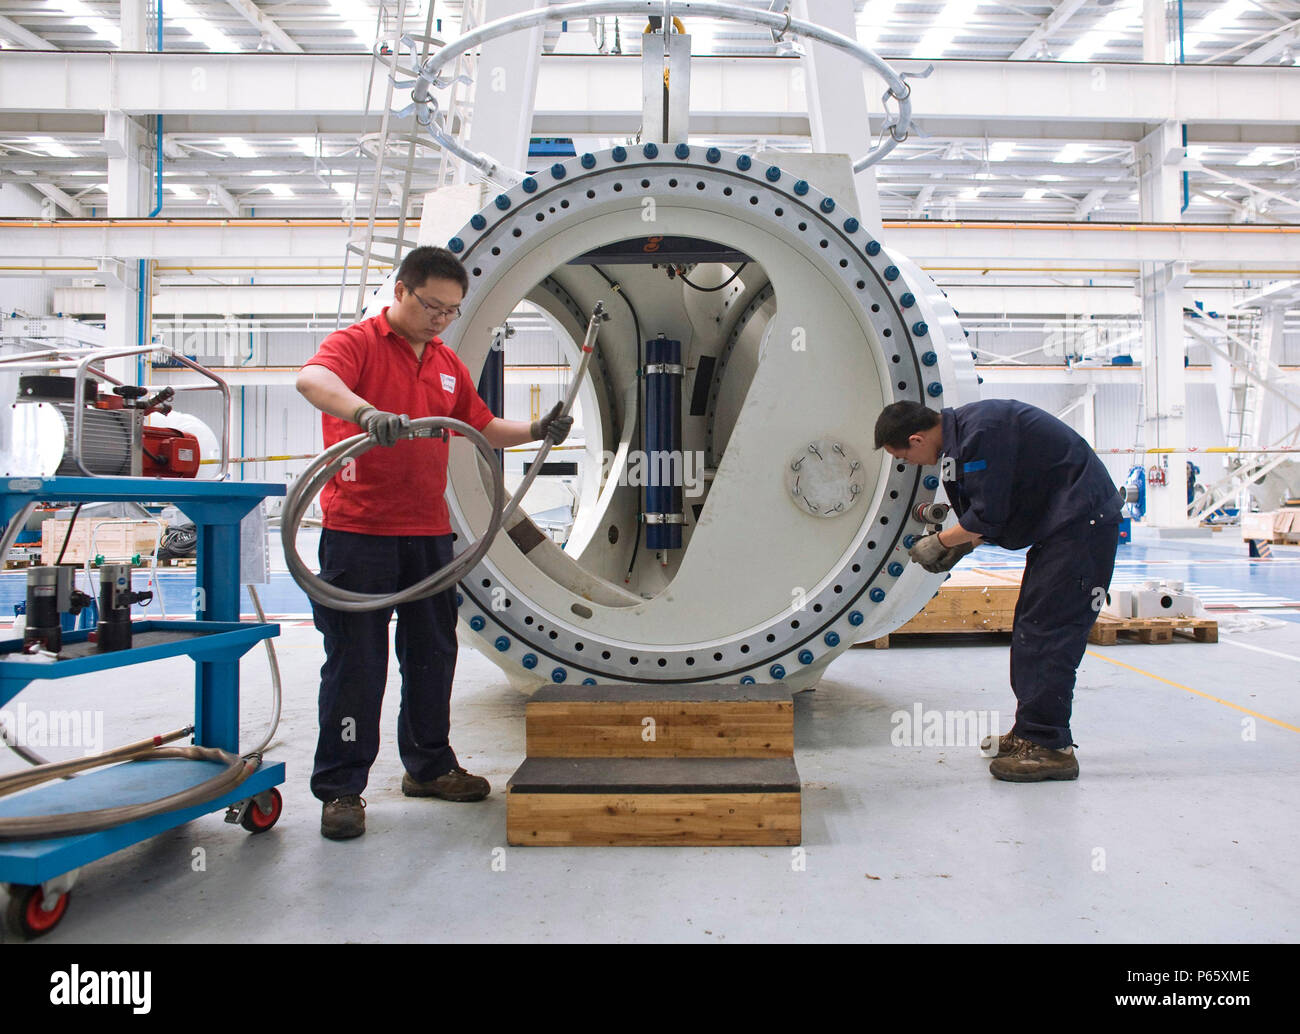 Wind turbine manufacturing, Nantong, Jiangsu, China Stock Photo - Alamy